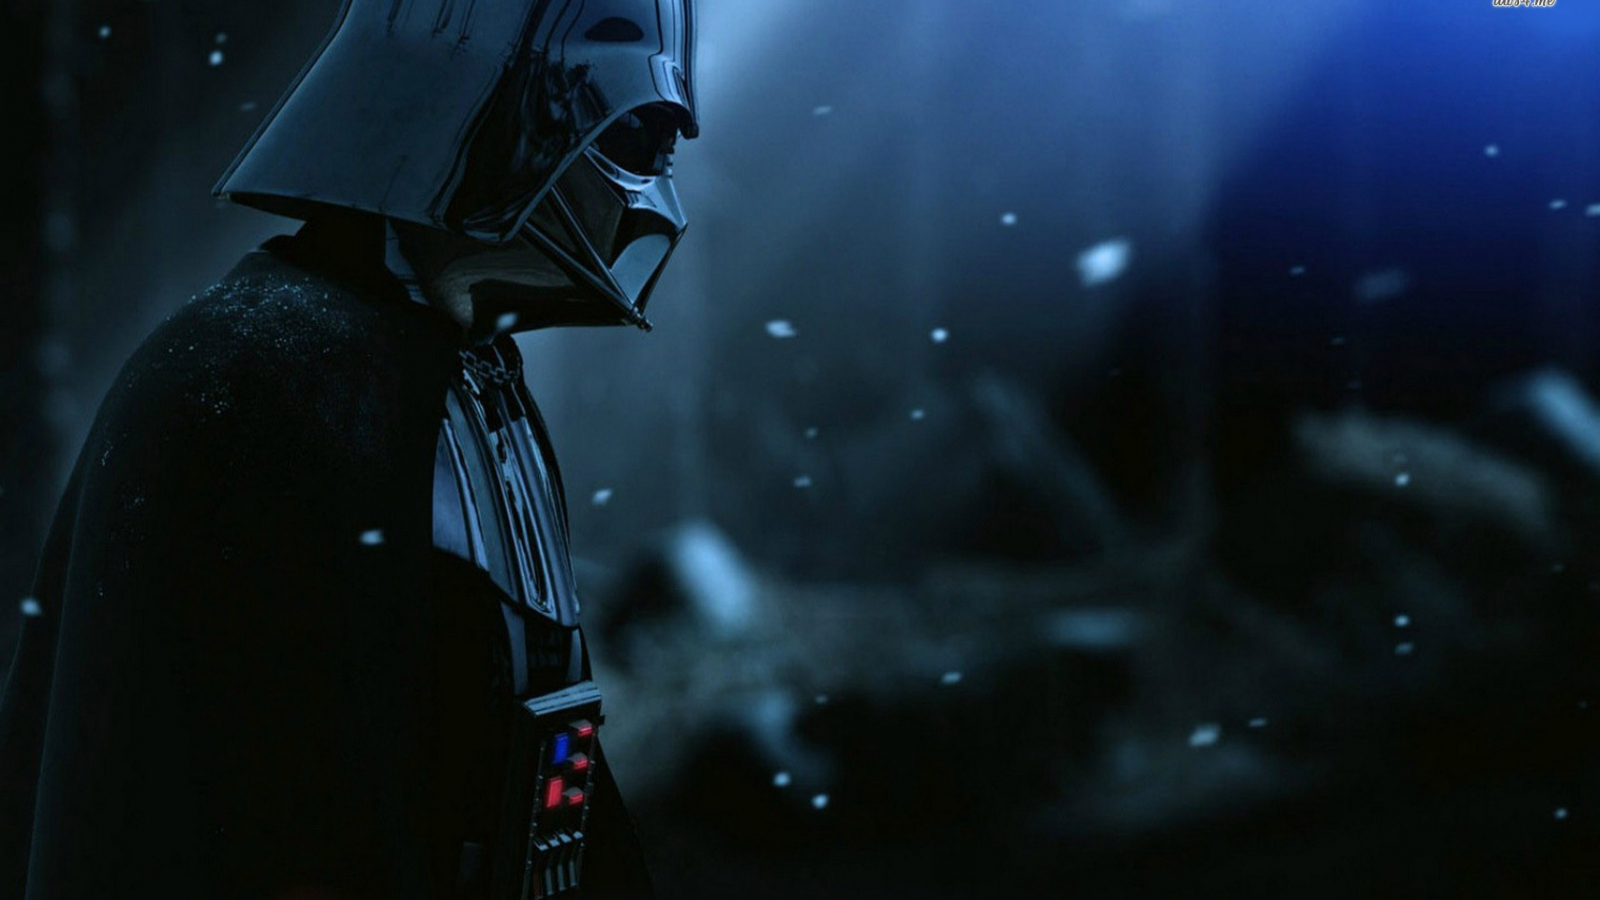 Free Download Darth Vader Wallpapers For Android The Art Mad